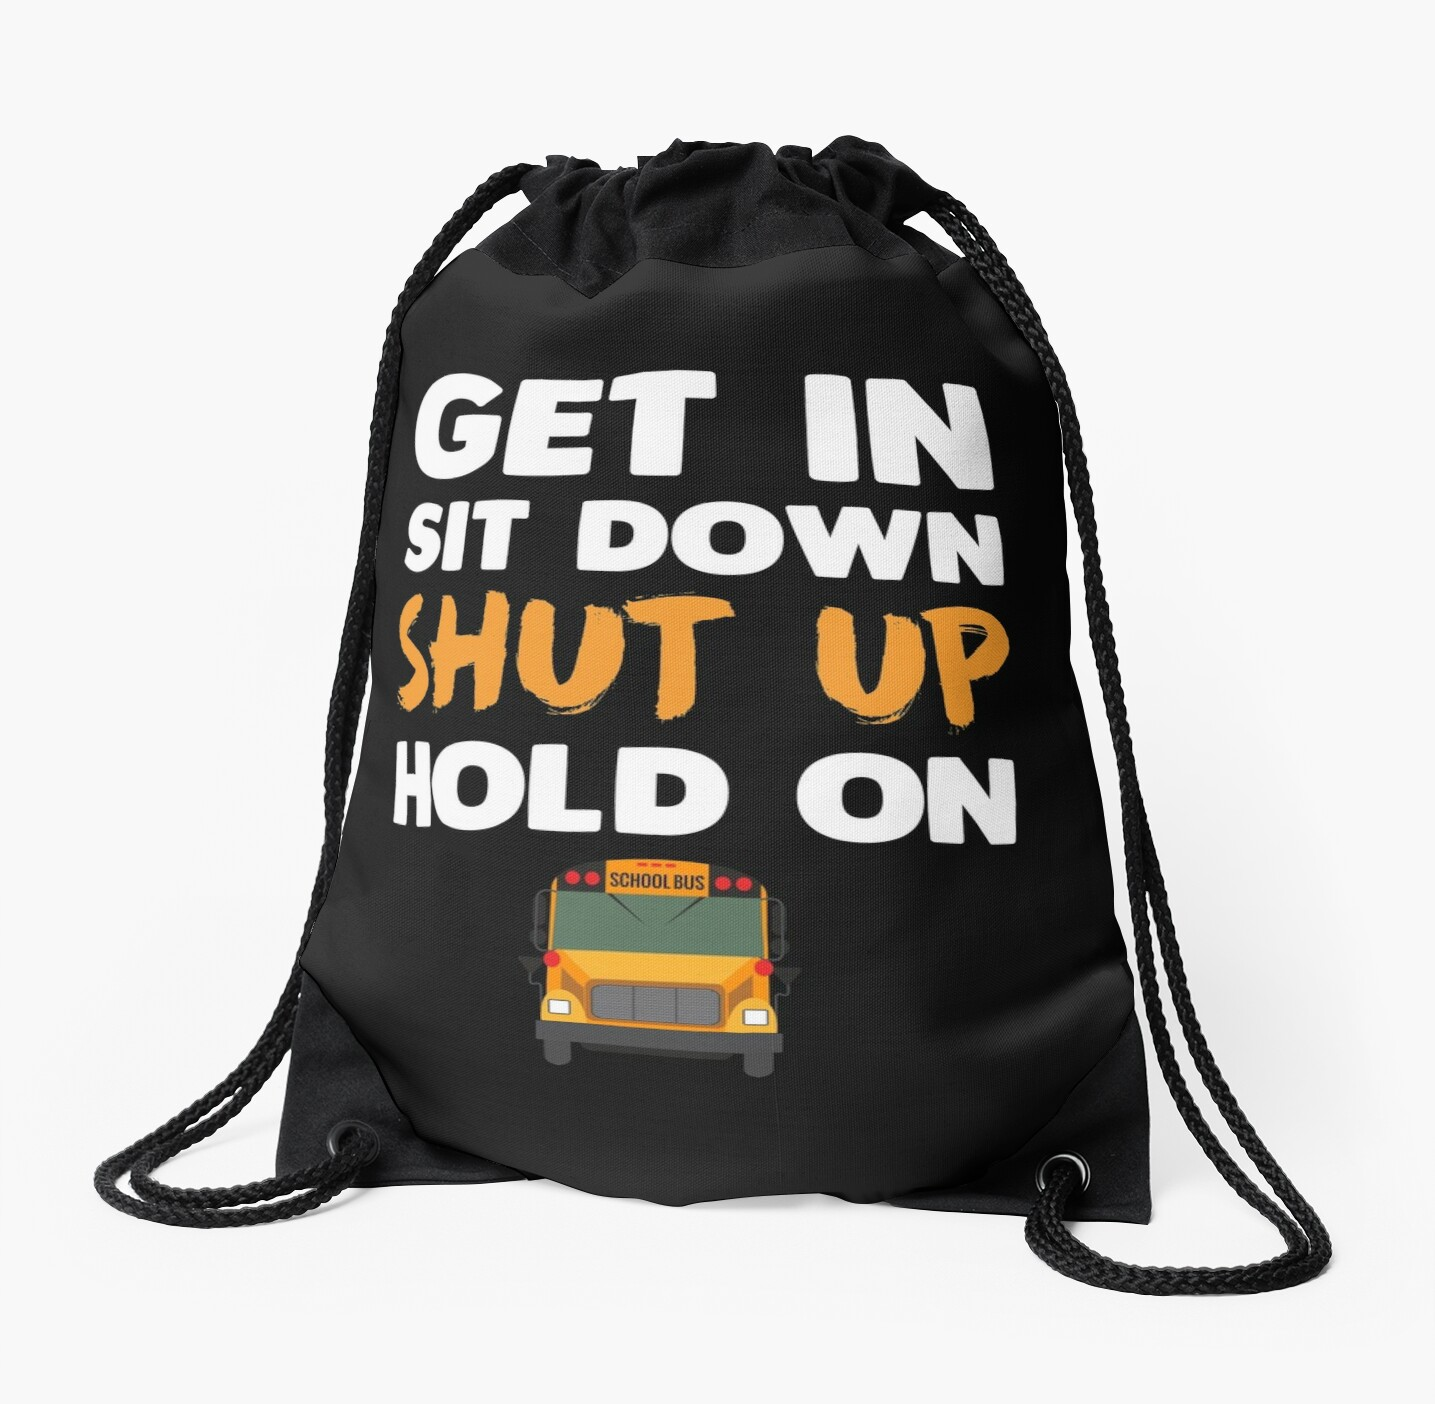 Funny Gift Ideas For Bus Driver Costume For Dad From Kids